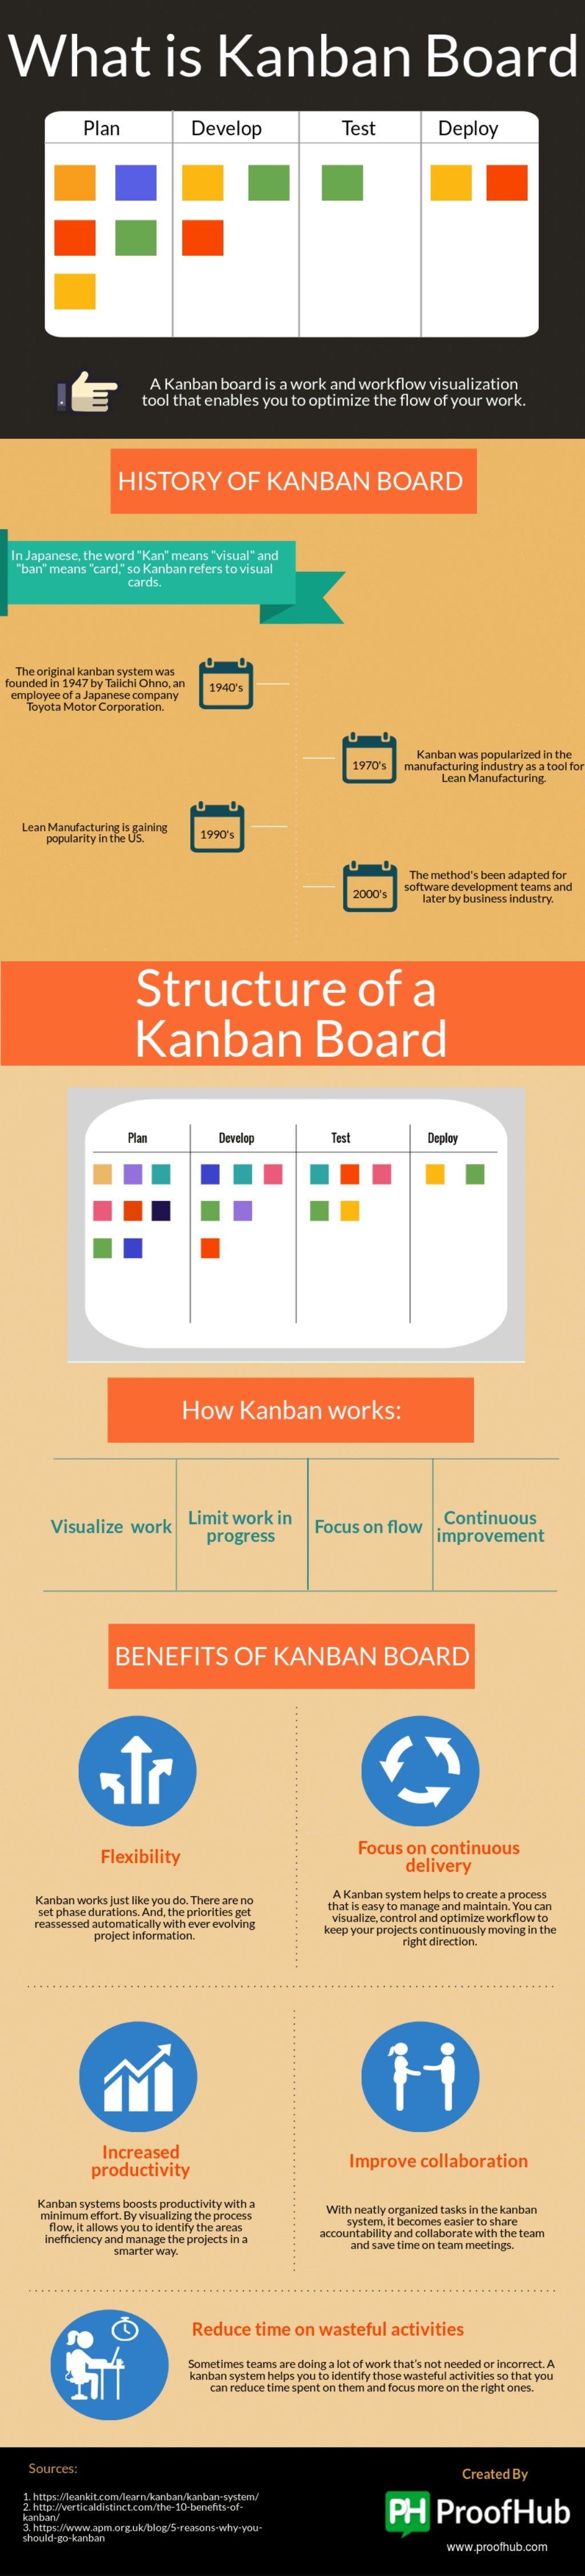 Kanban — lot more than just boards and post-it notes